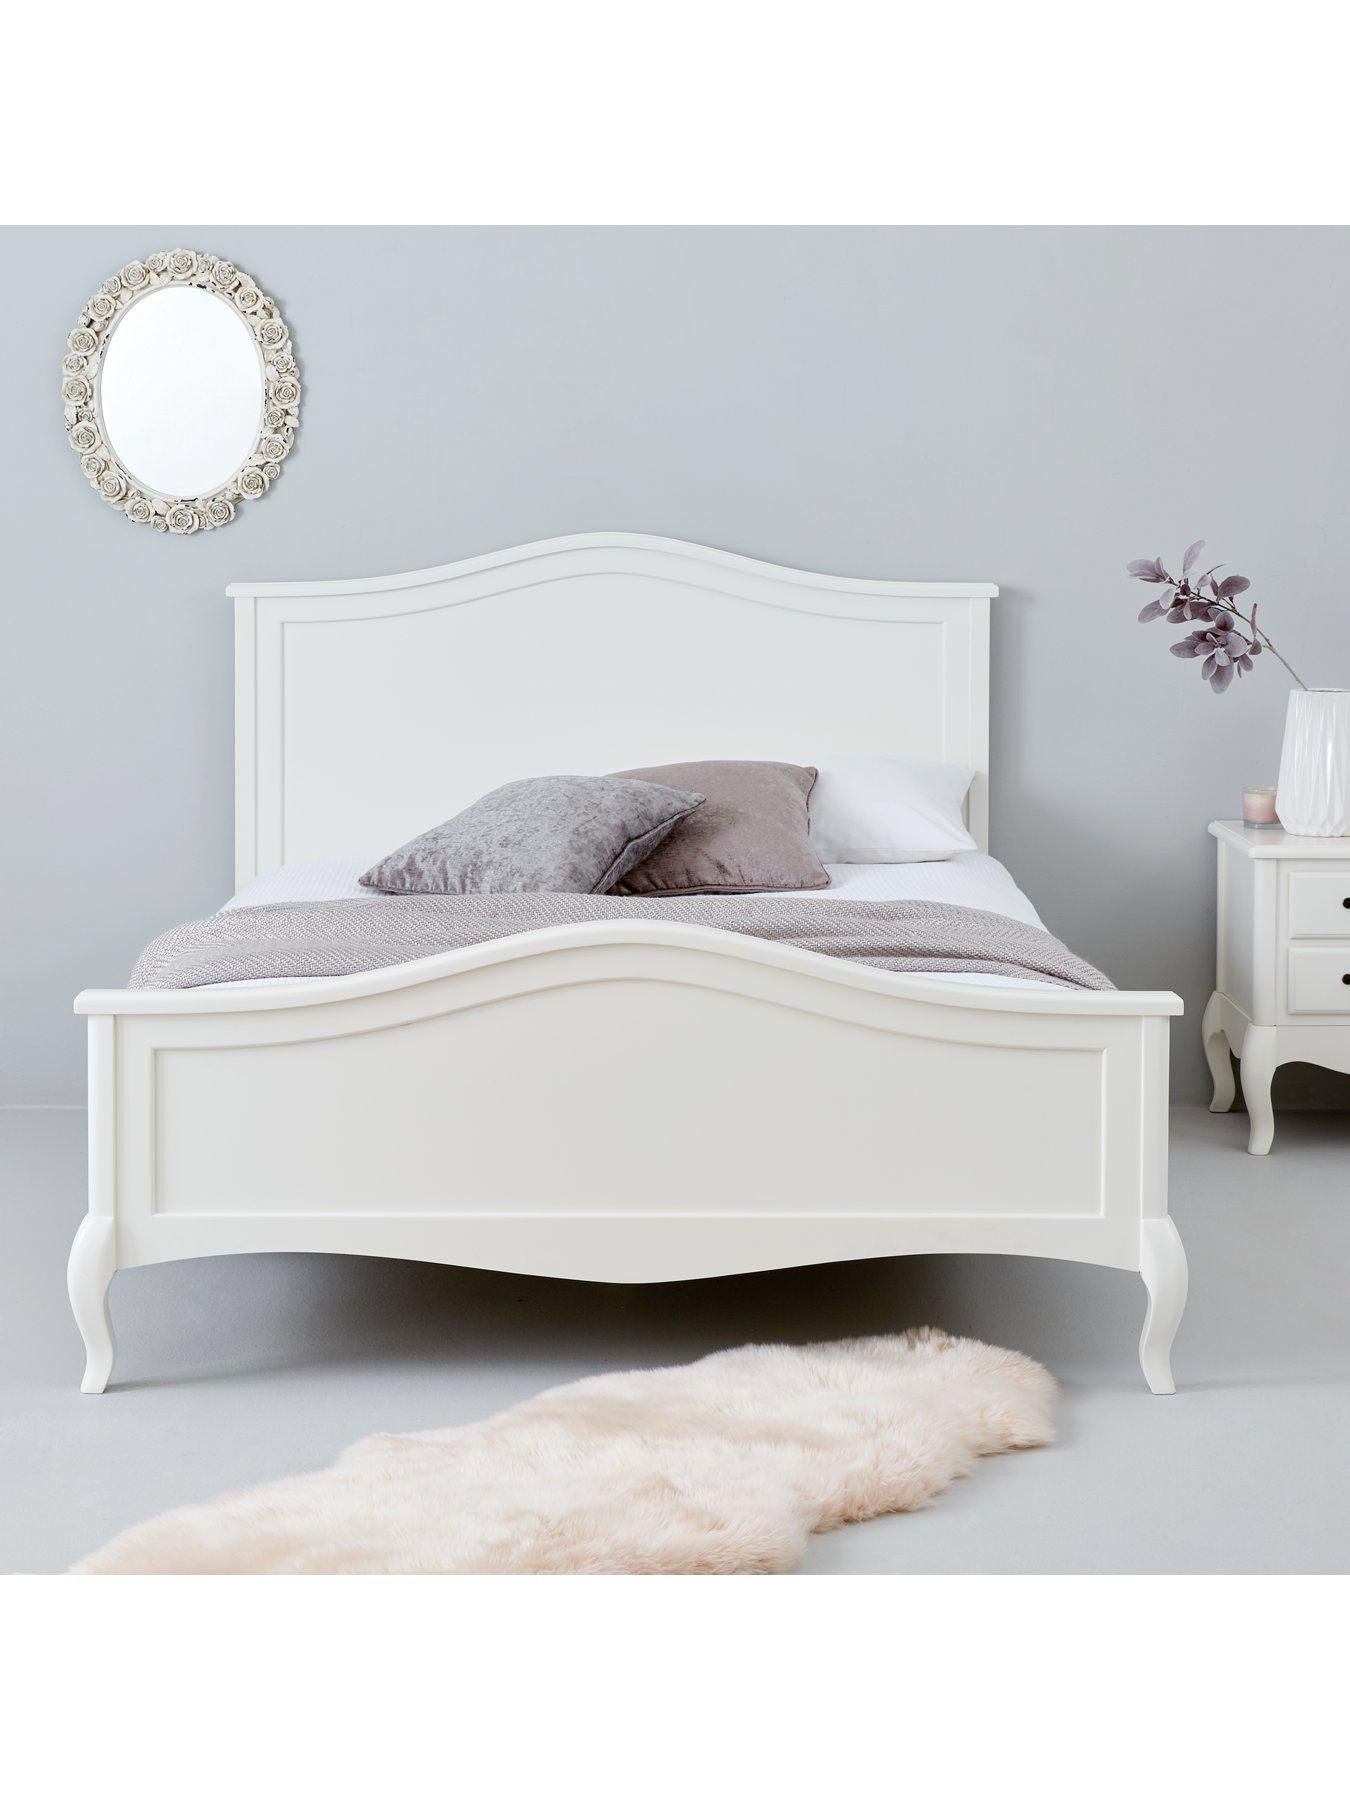 Olivia Wooden Bed With Mattress Options Bed Frame With Microquilt Mattress White Double Pinpon In 2020 White Bed Frame Bed Headboard Design White Wooden Bed